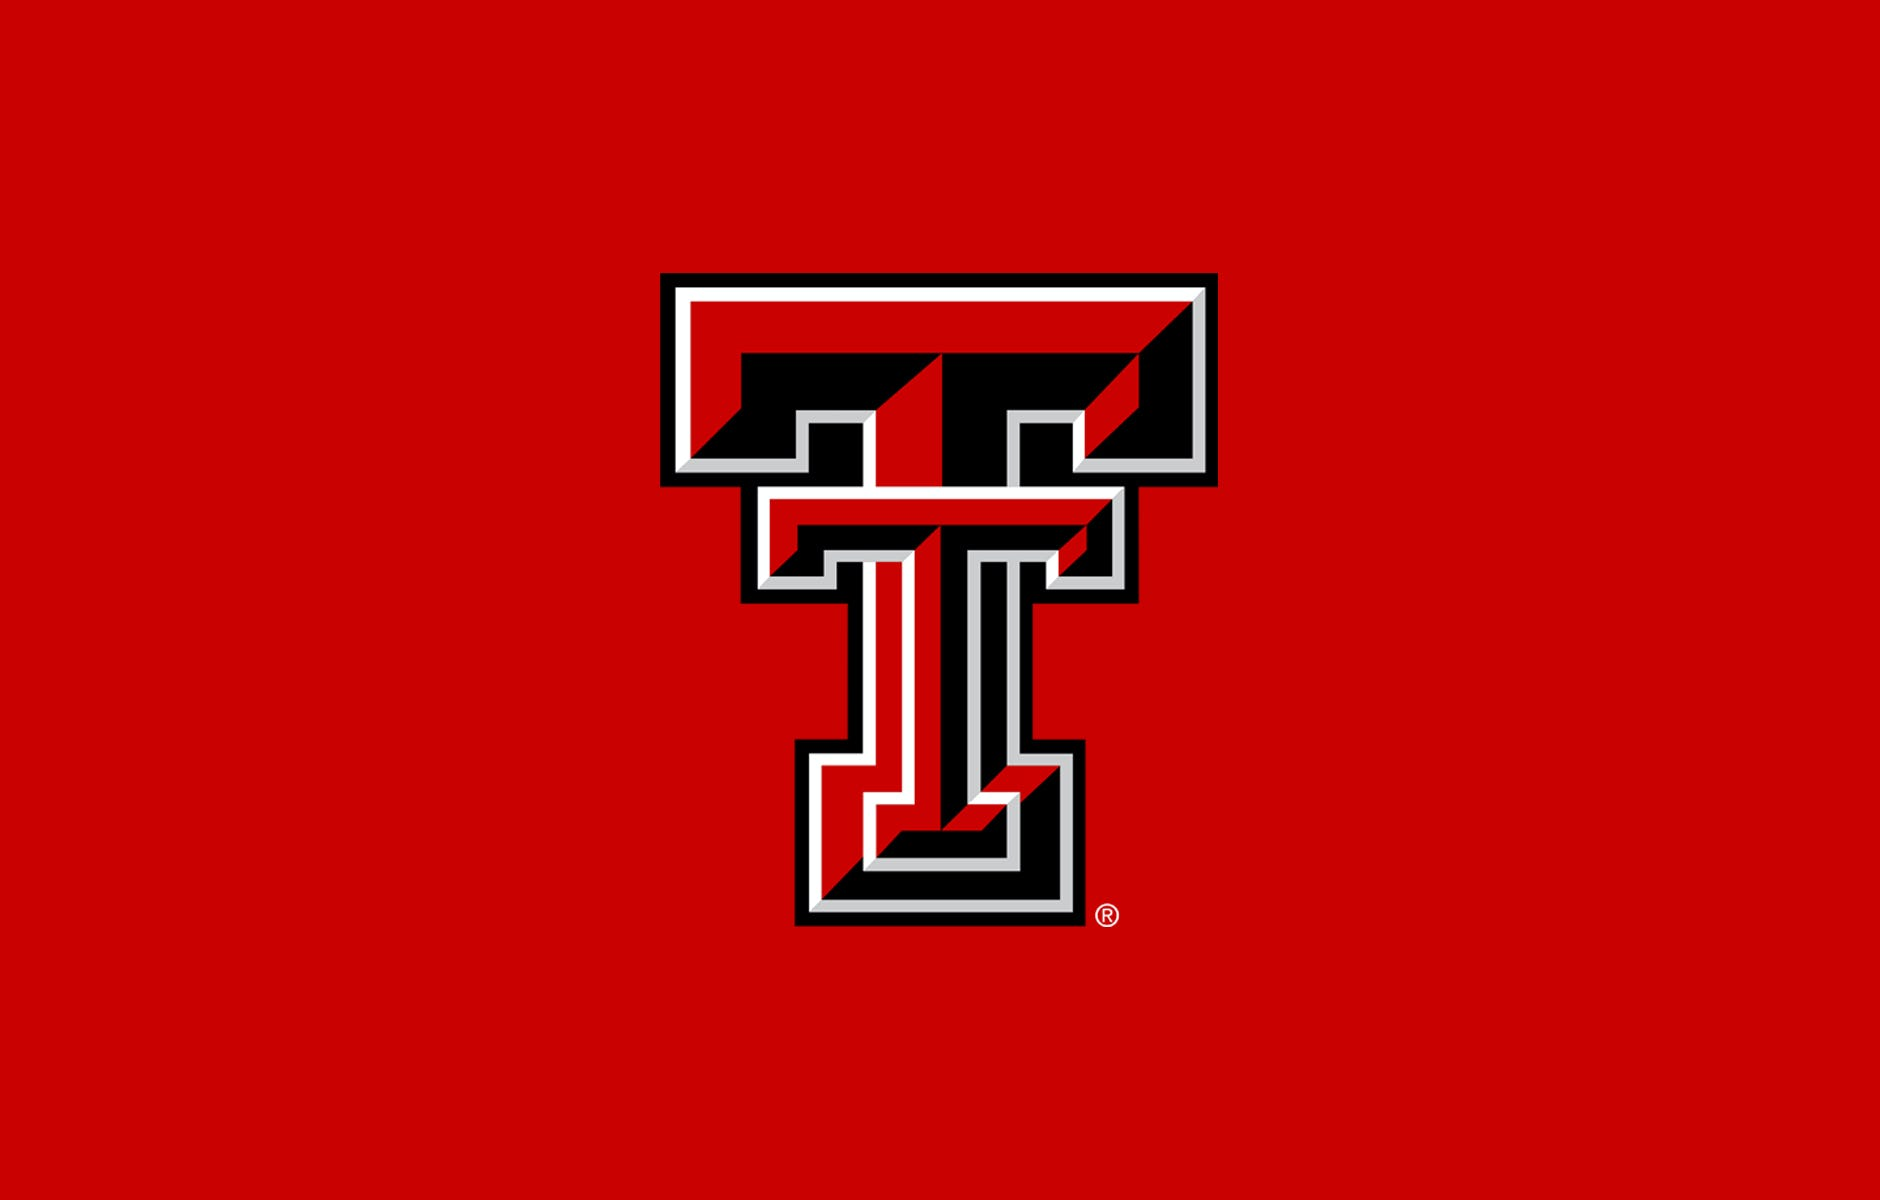 Texas Tech continues to add to coaching staff, announce hiring of Tommerdahl